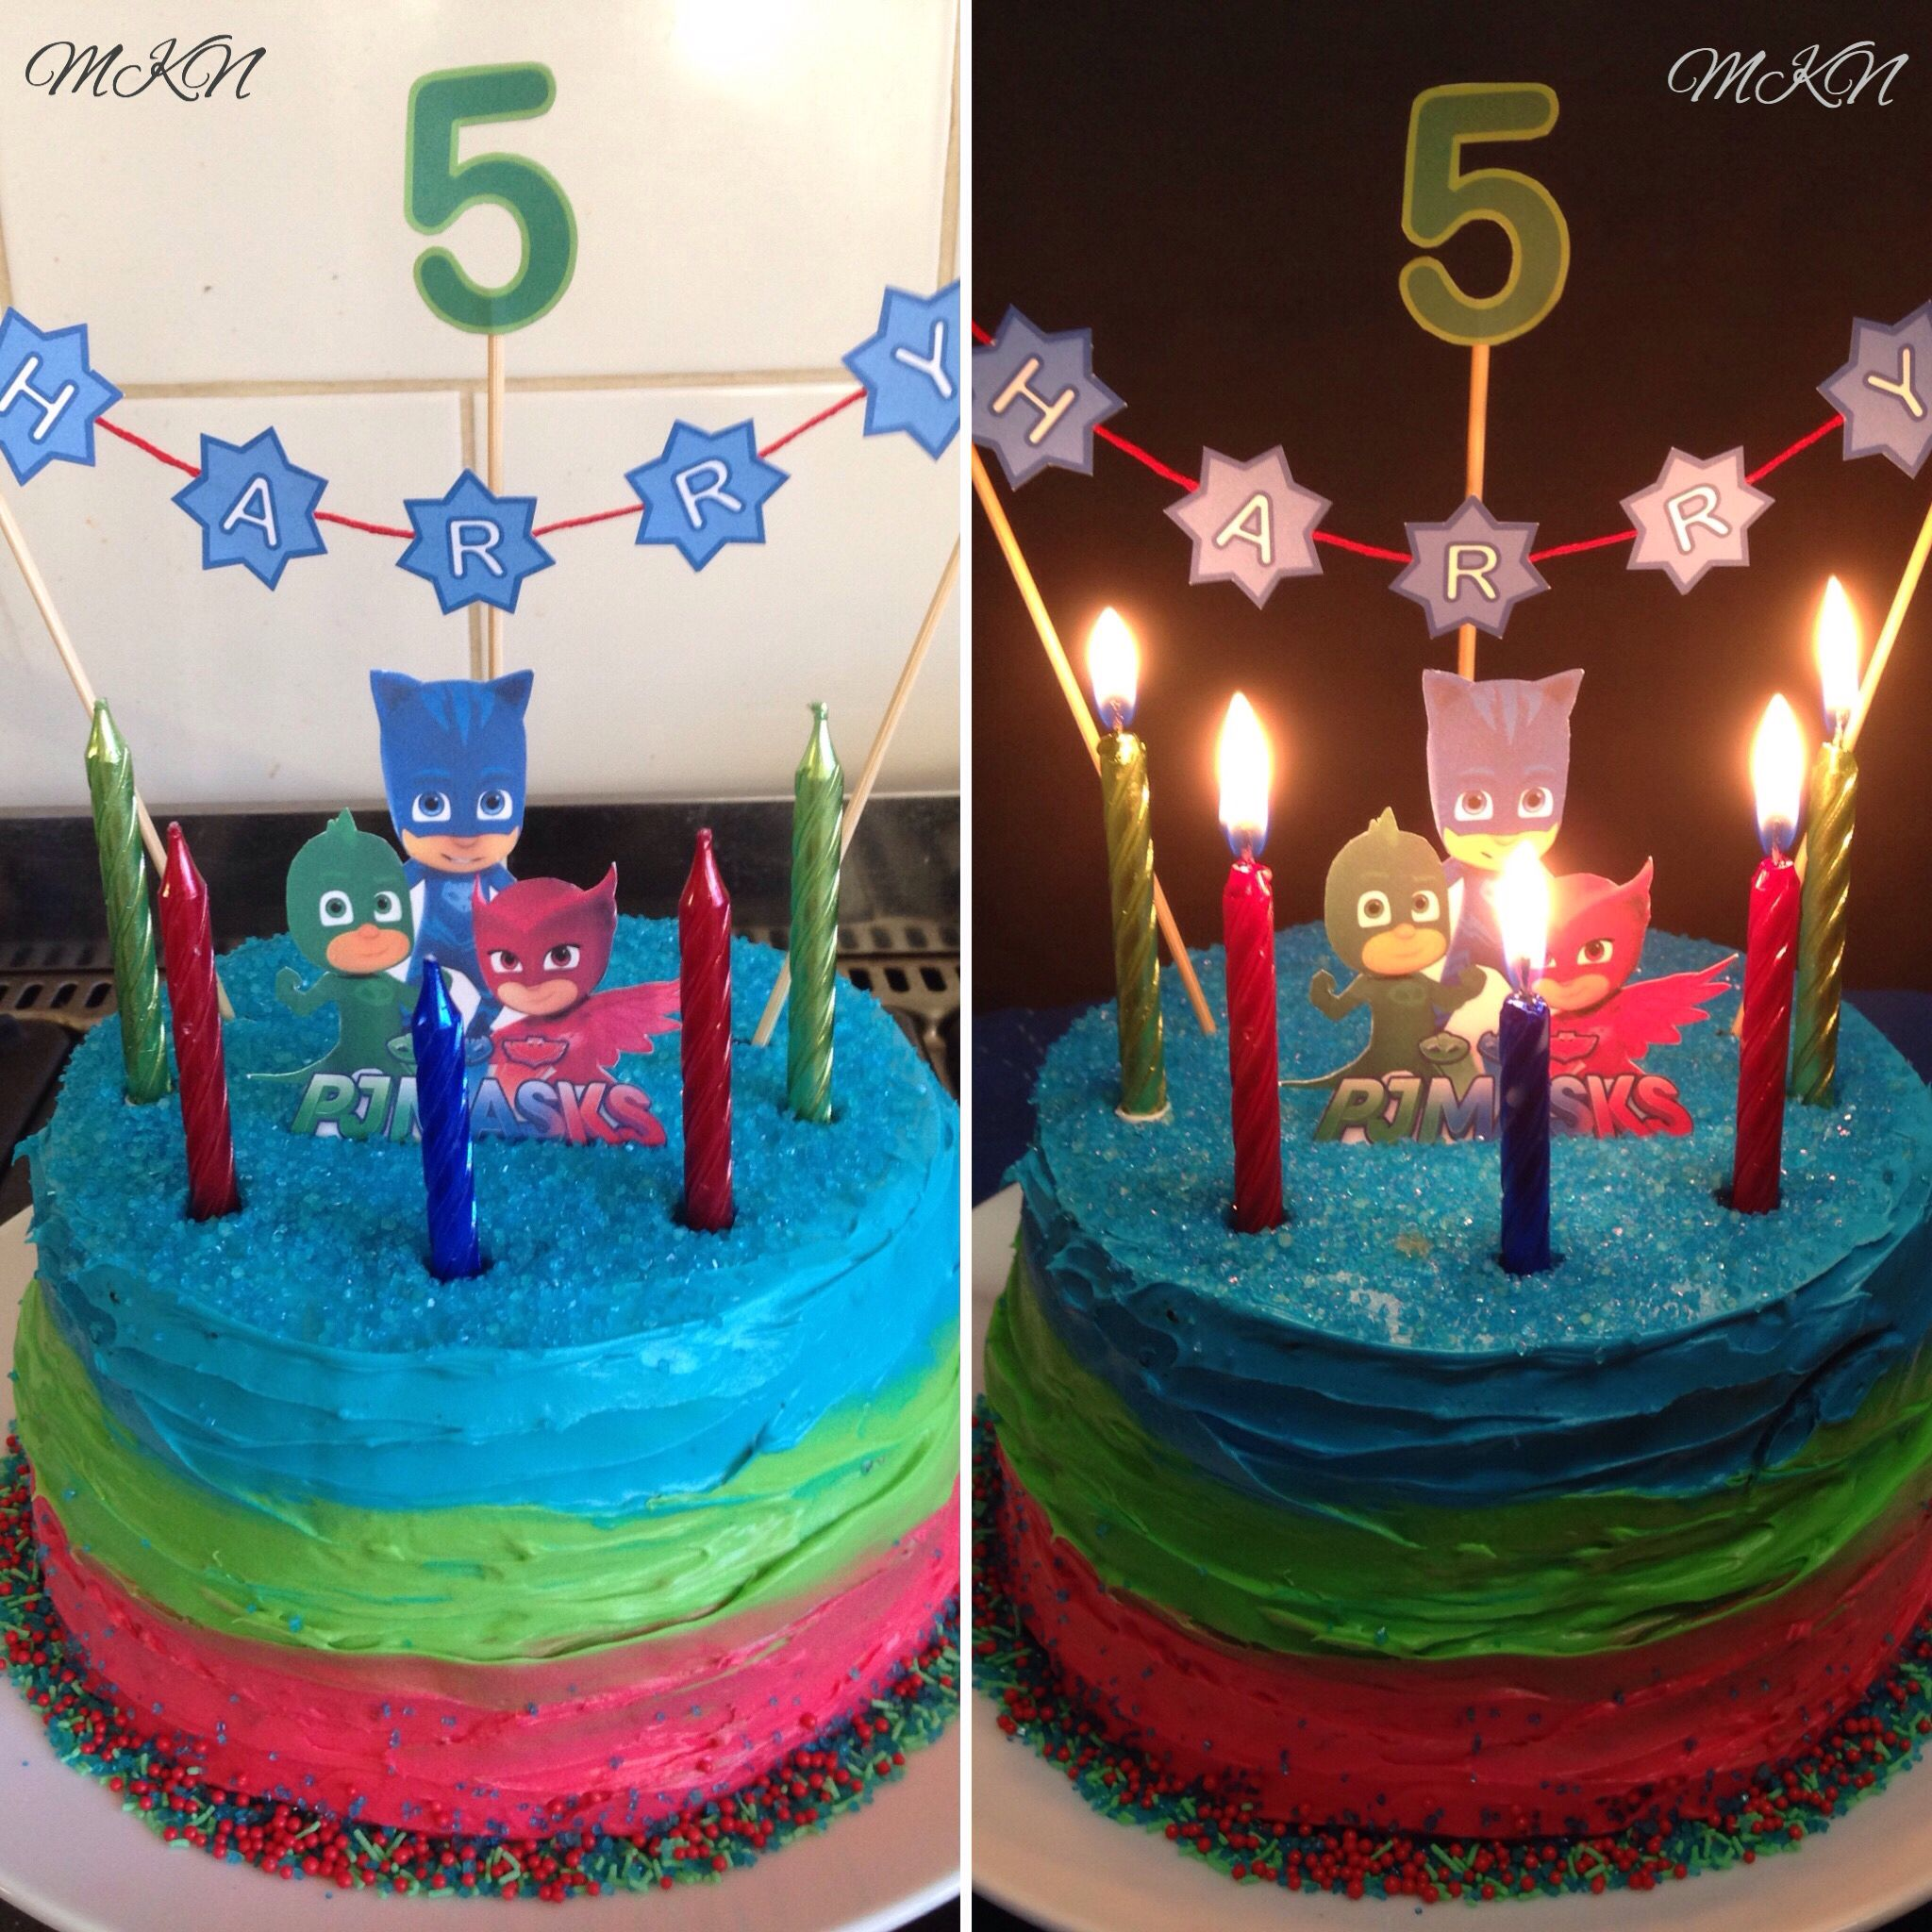 PJ Masks Birthday Cake Fifth Birthday Cake 5th Birthday Cake Ideas